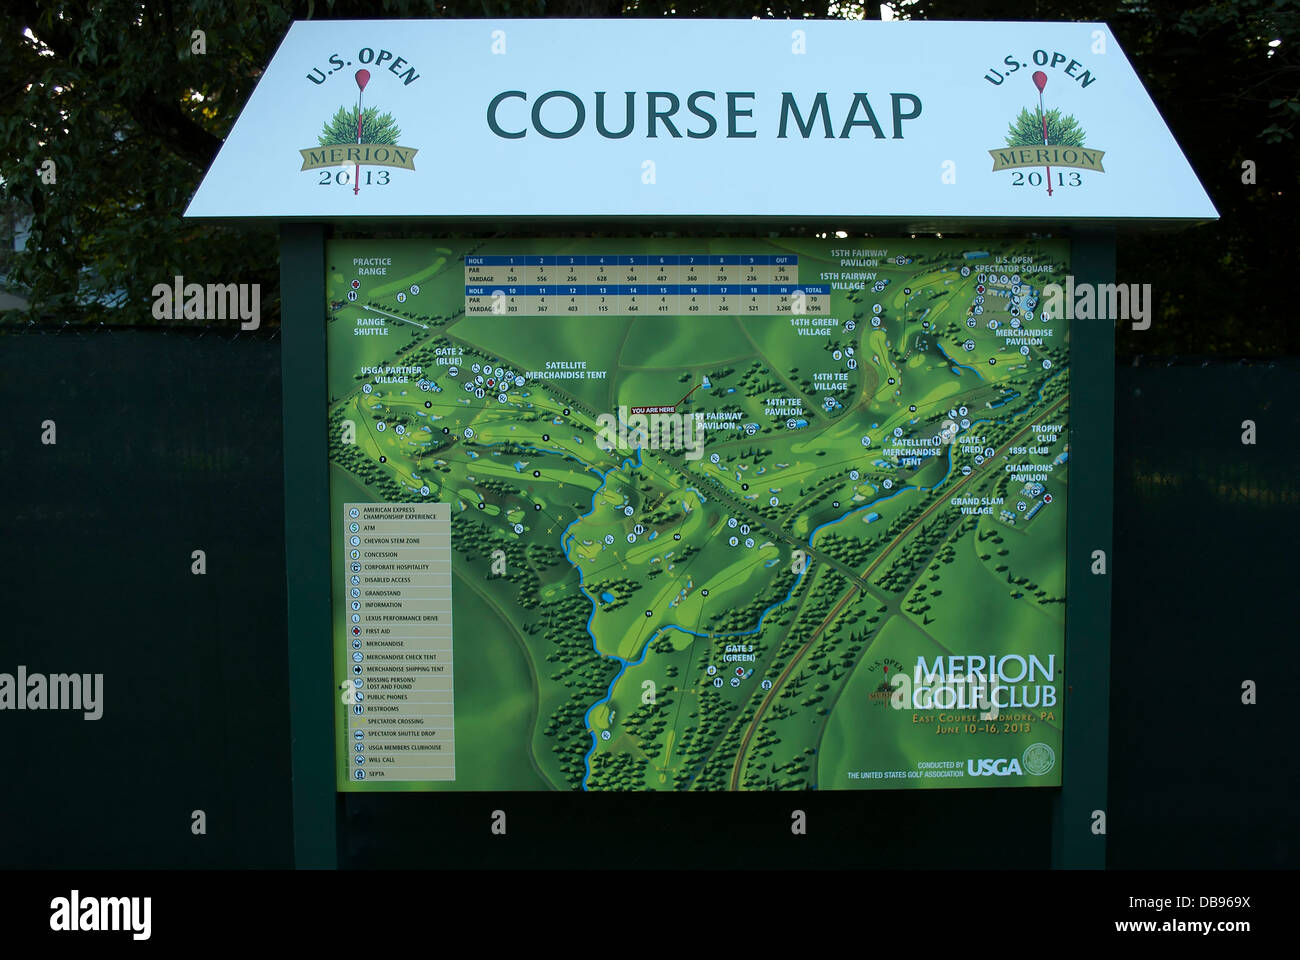 course map merion golf club site of 2013 us open golf haverford township